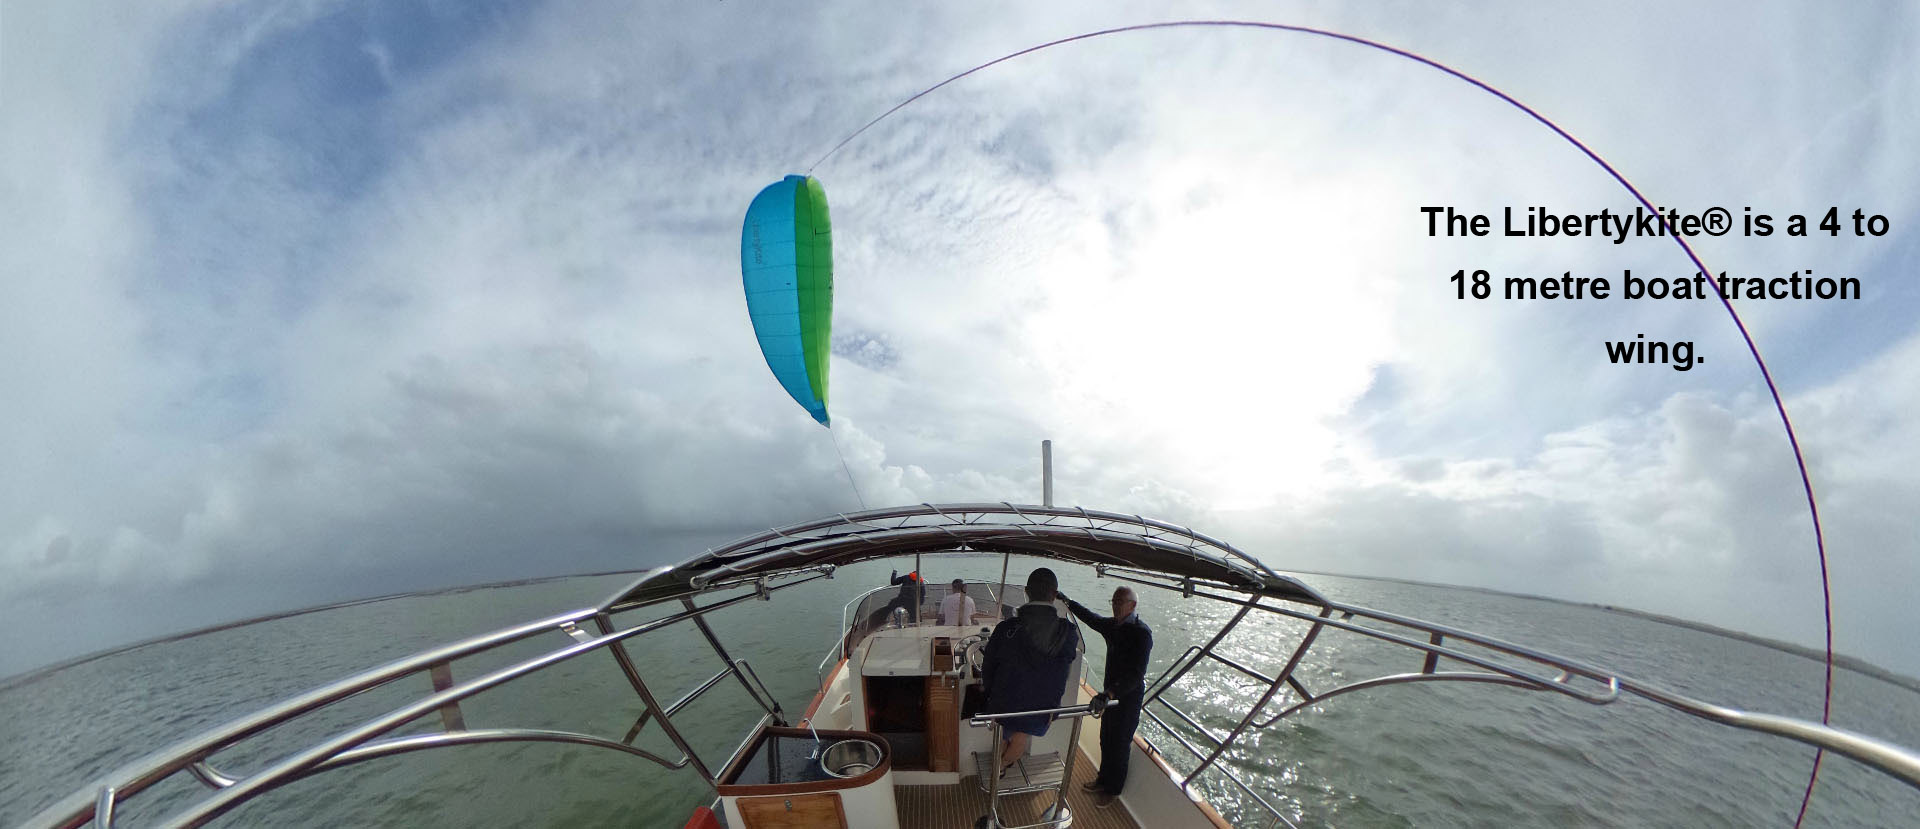 The Libertykite® is a 4 to 18 metre boat traction wing.